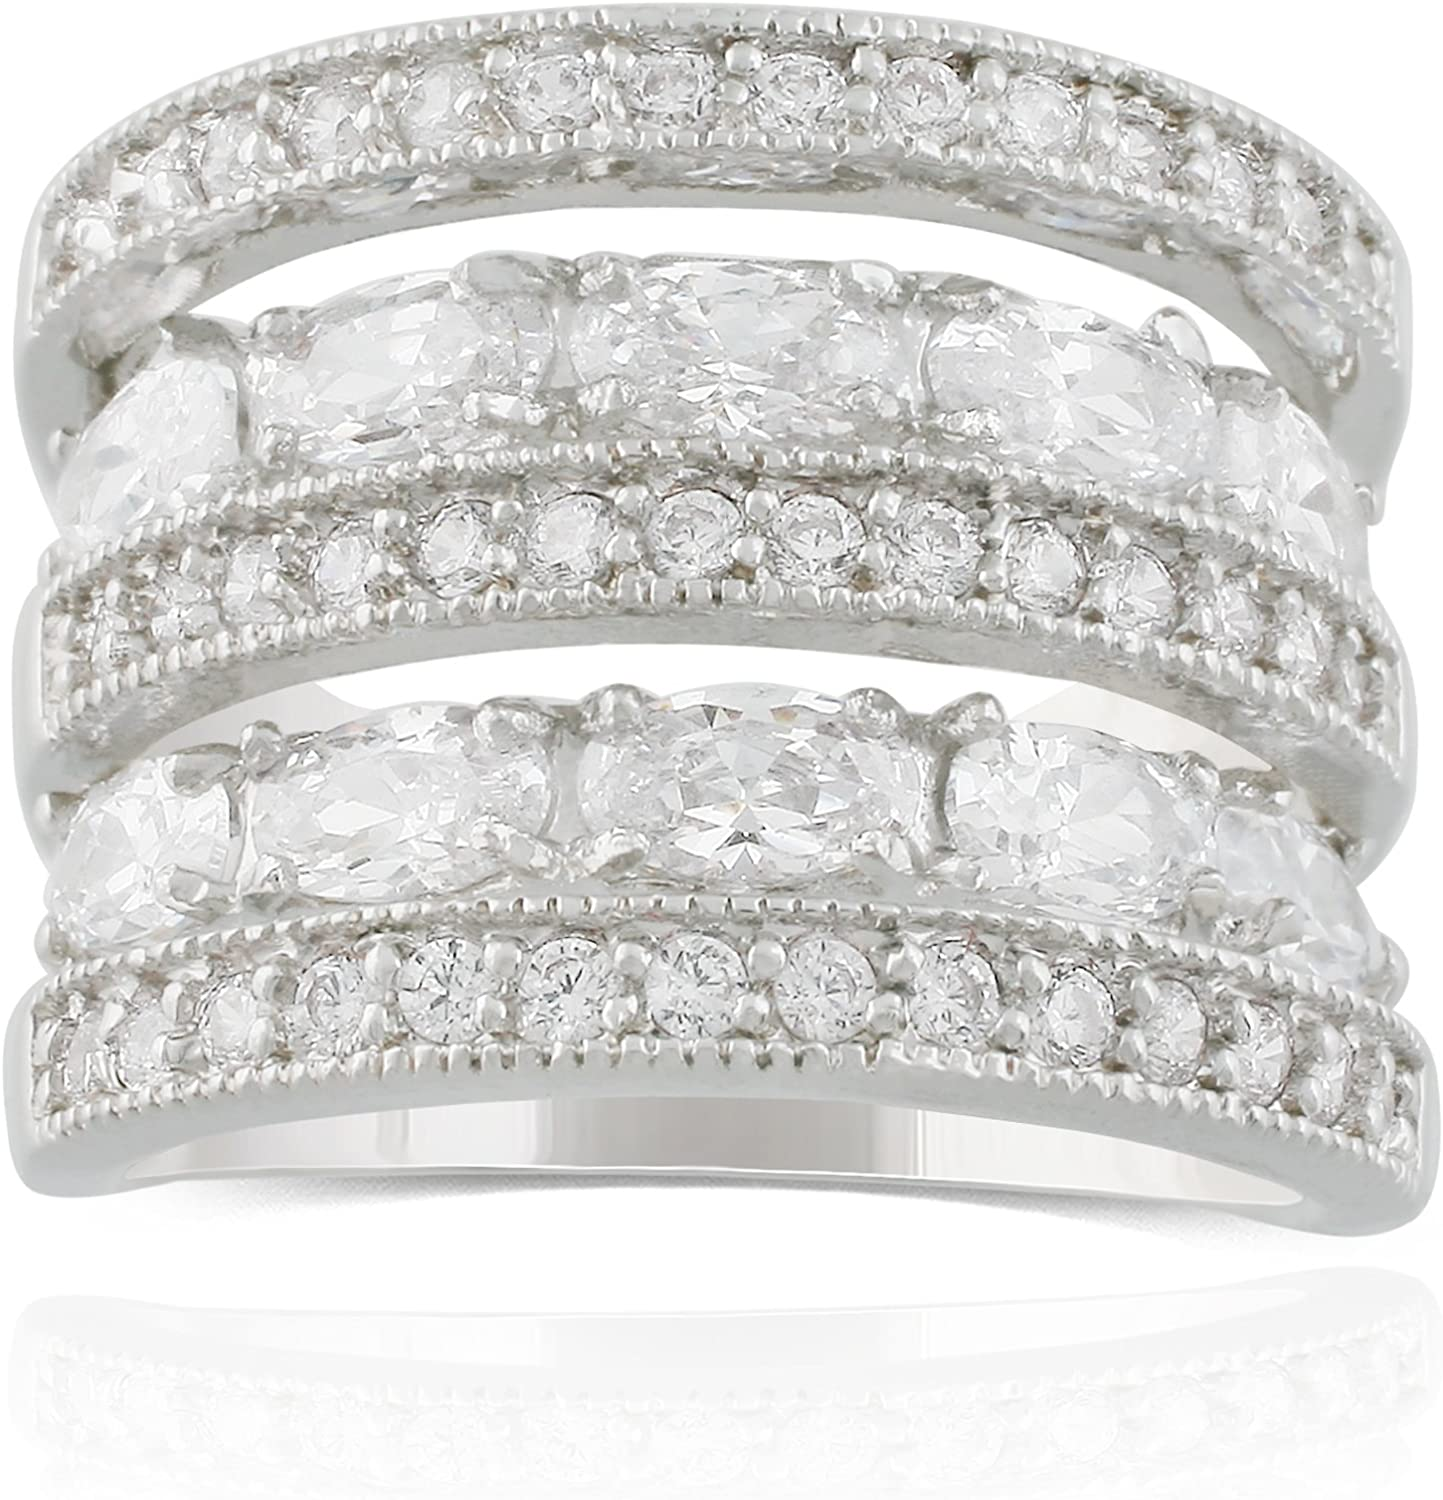 JanKuo Jewelry Rhodium Plated Cubic Zirconia Wide Band Cocktail Ring